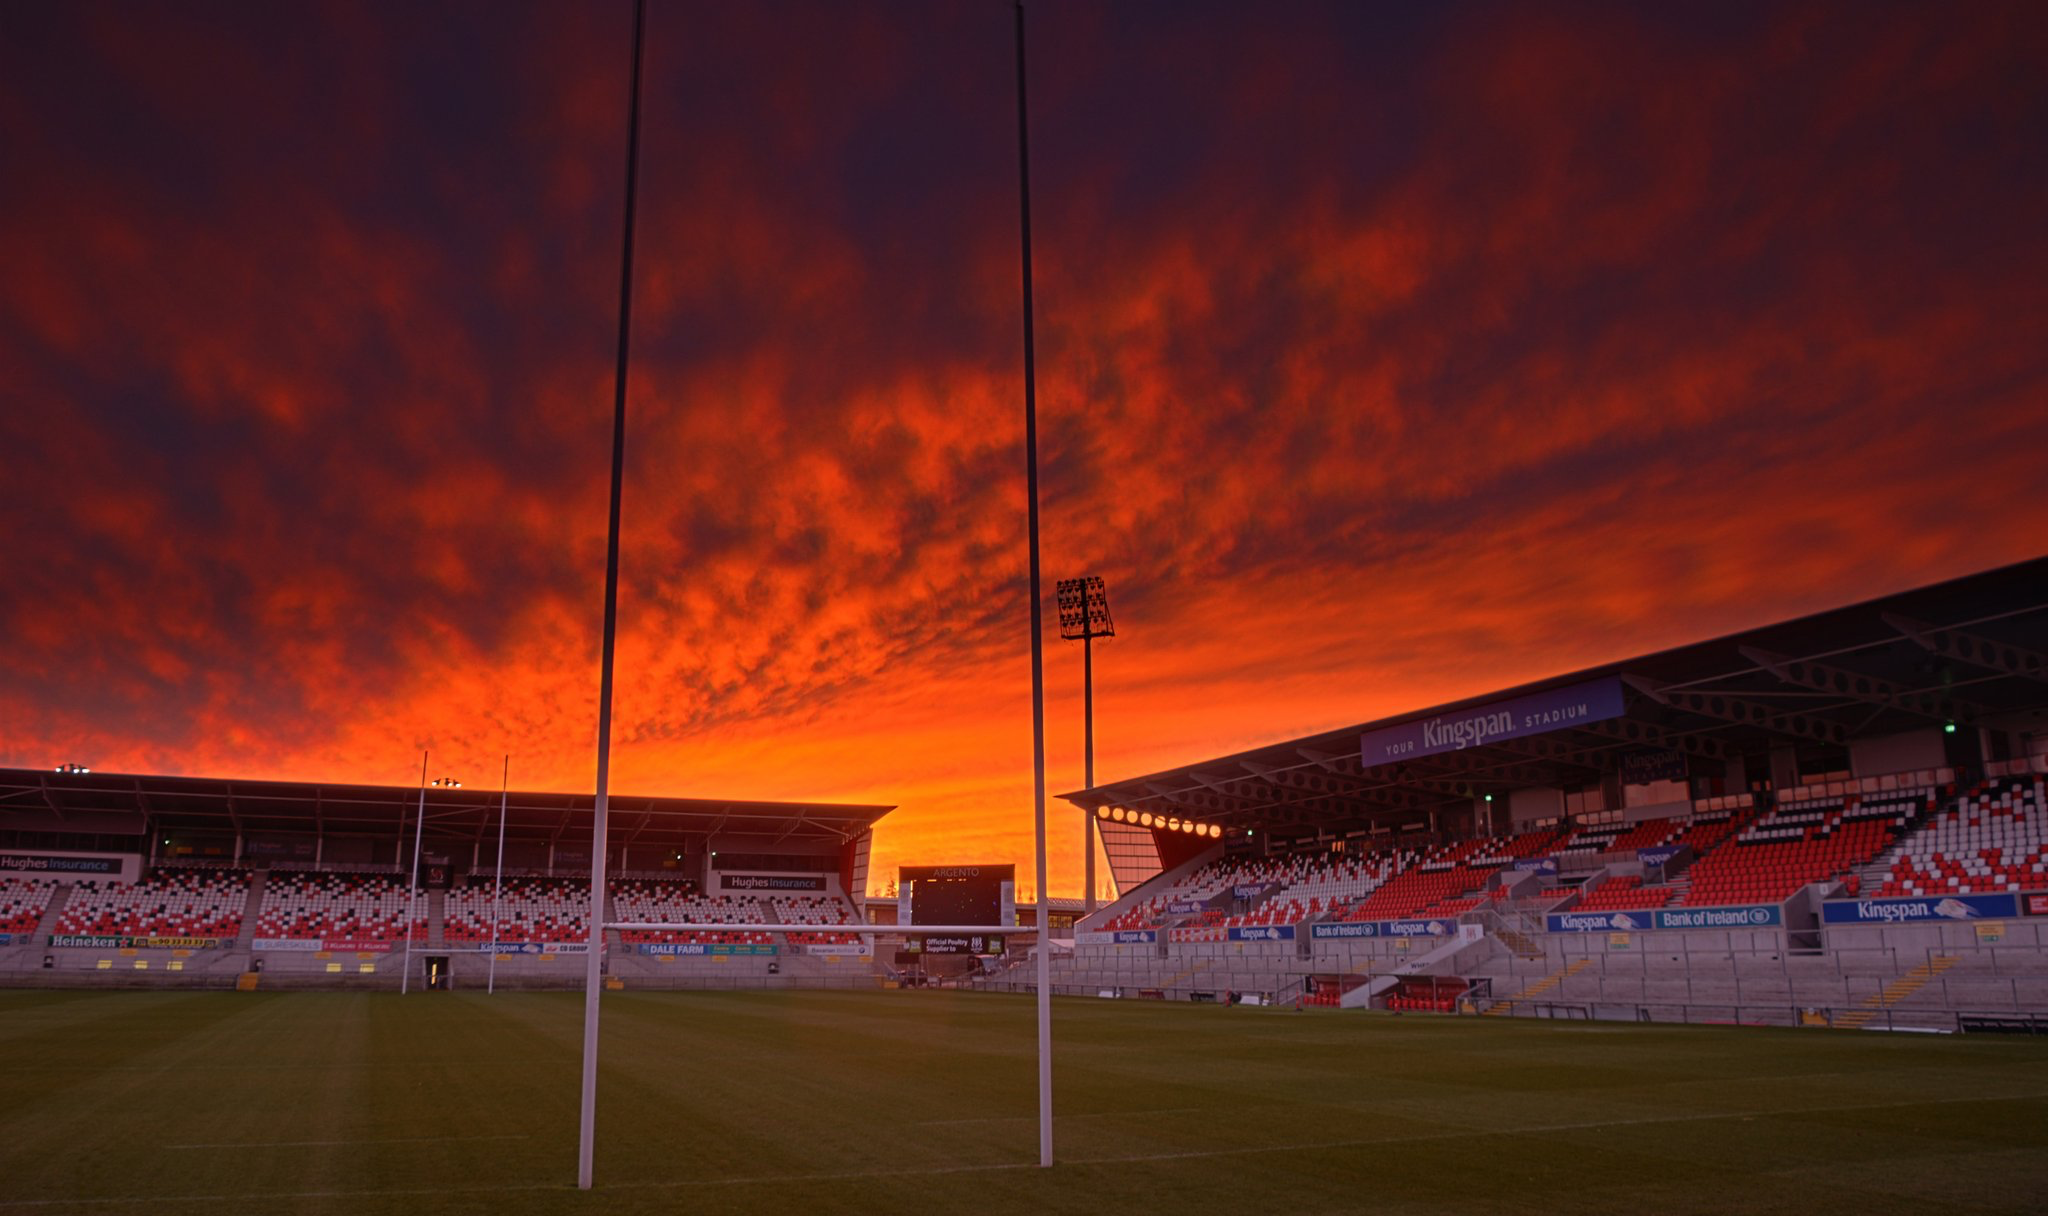 Sunset over Kingspan Stadium, Belfast (With images